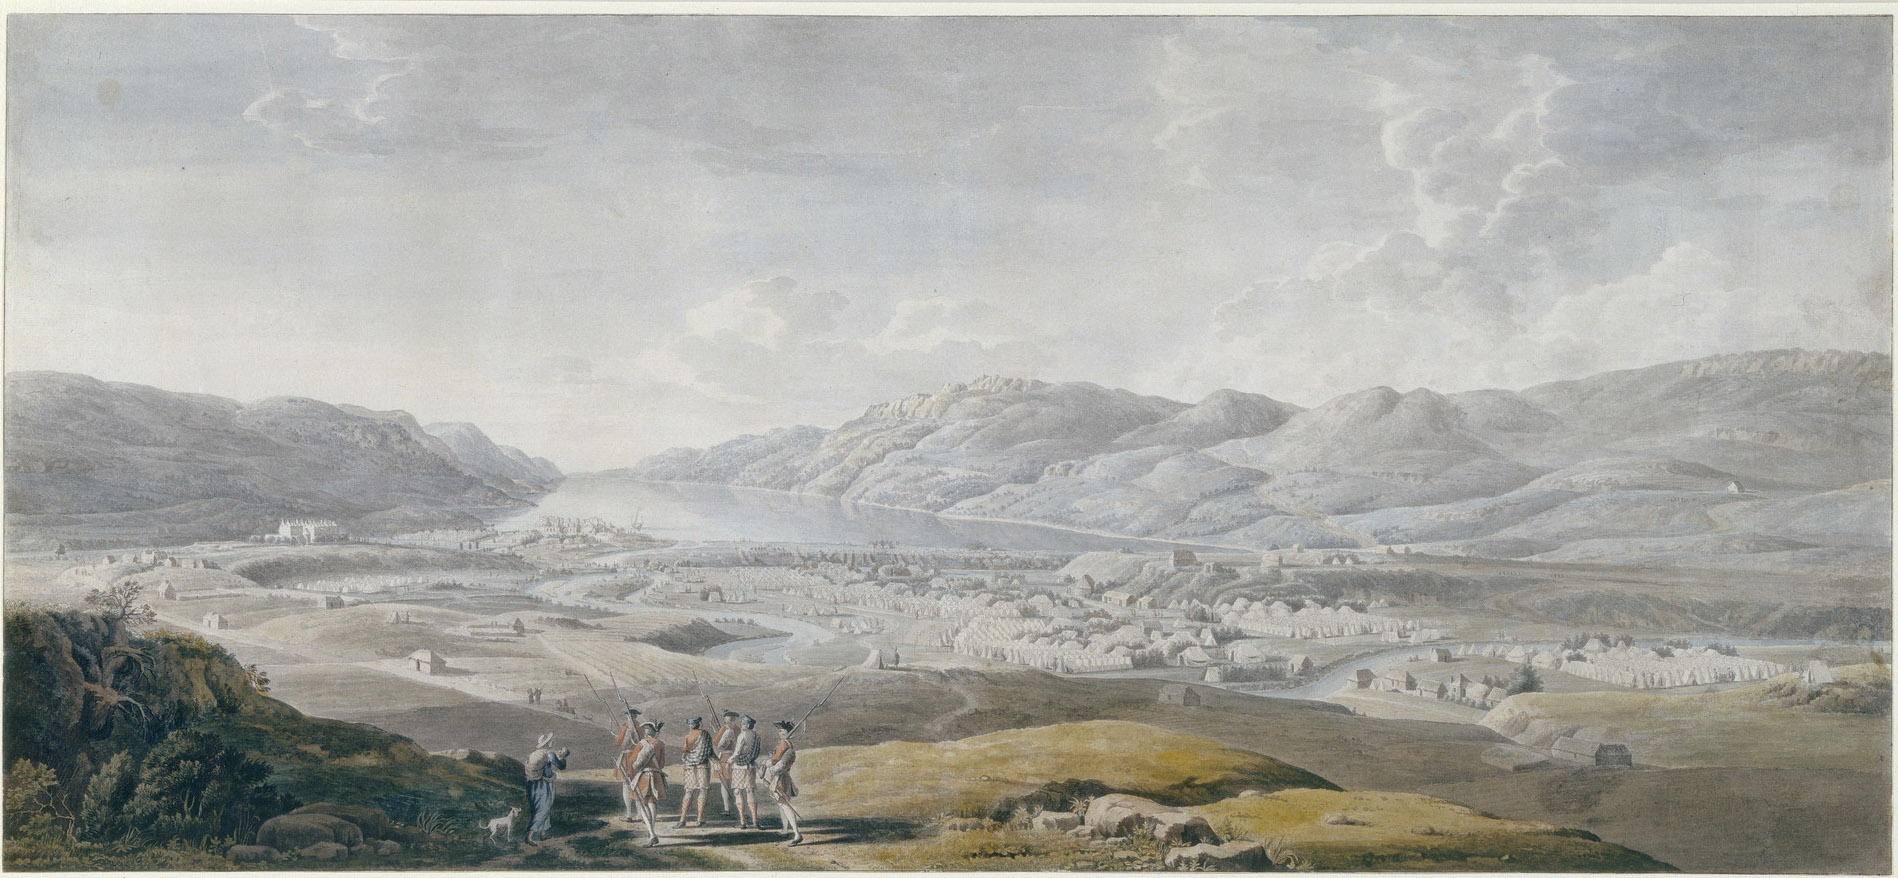 Thomas Sandby's view of Fort Augustus